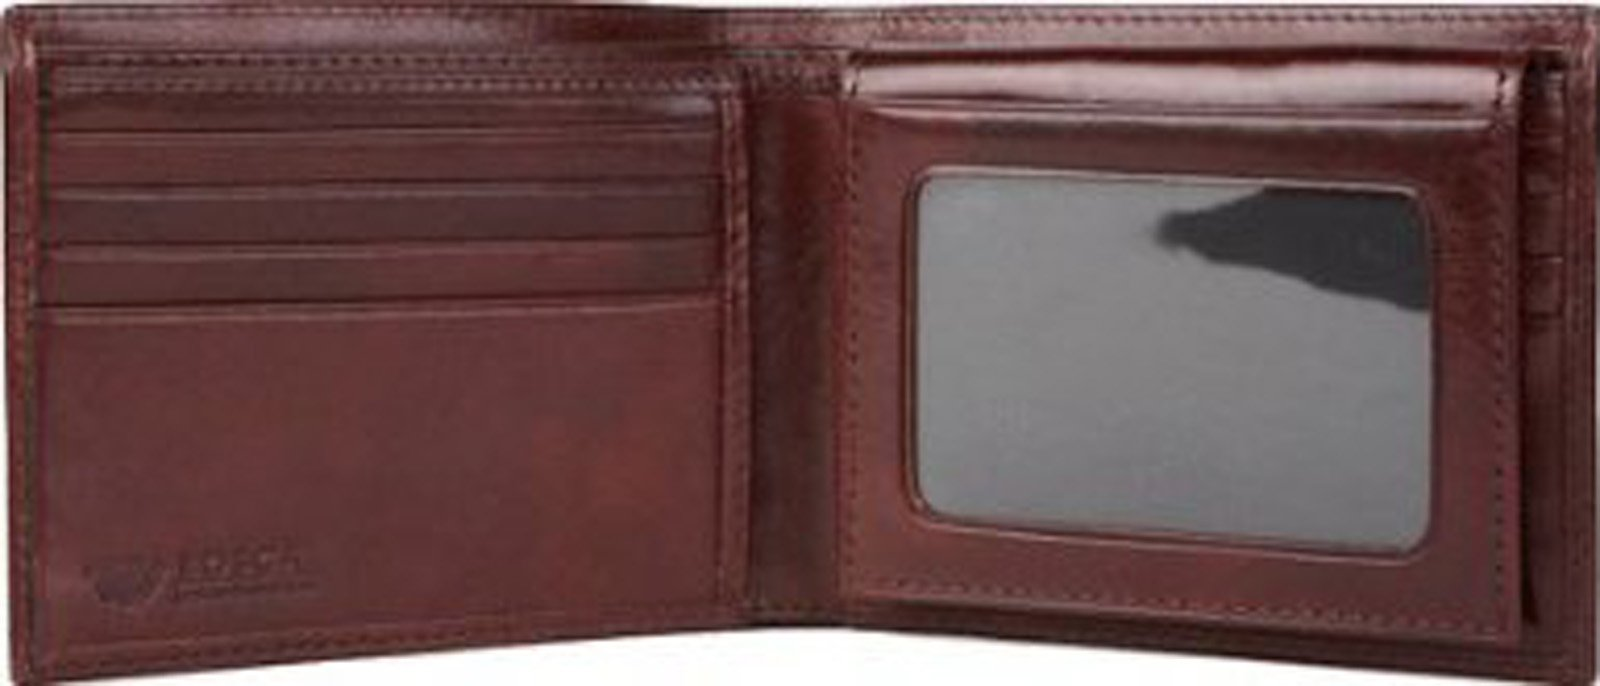 Bosca Men's Old Leather Credit Wallet with I.D. Passcase Billfolds,Dark Brown by Bosca